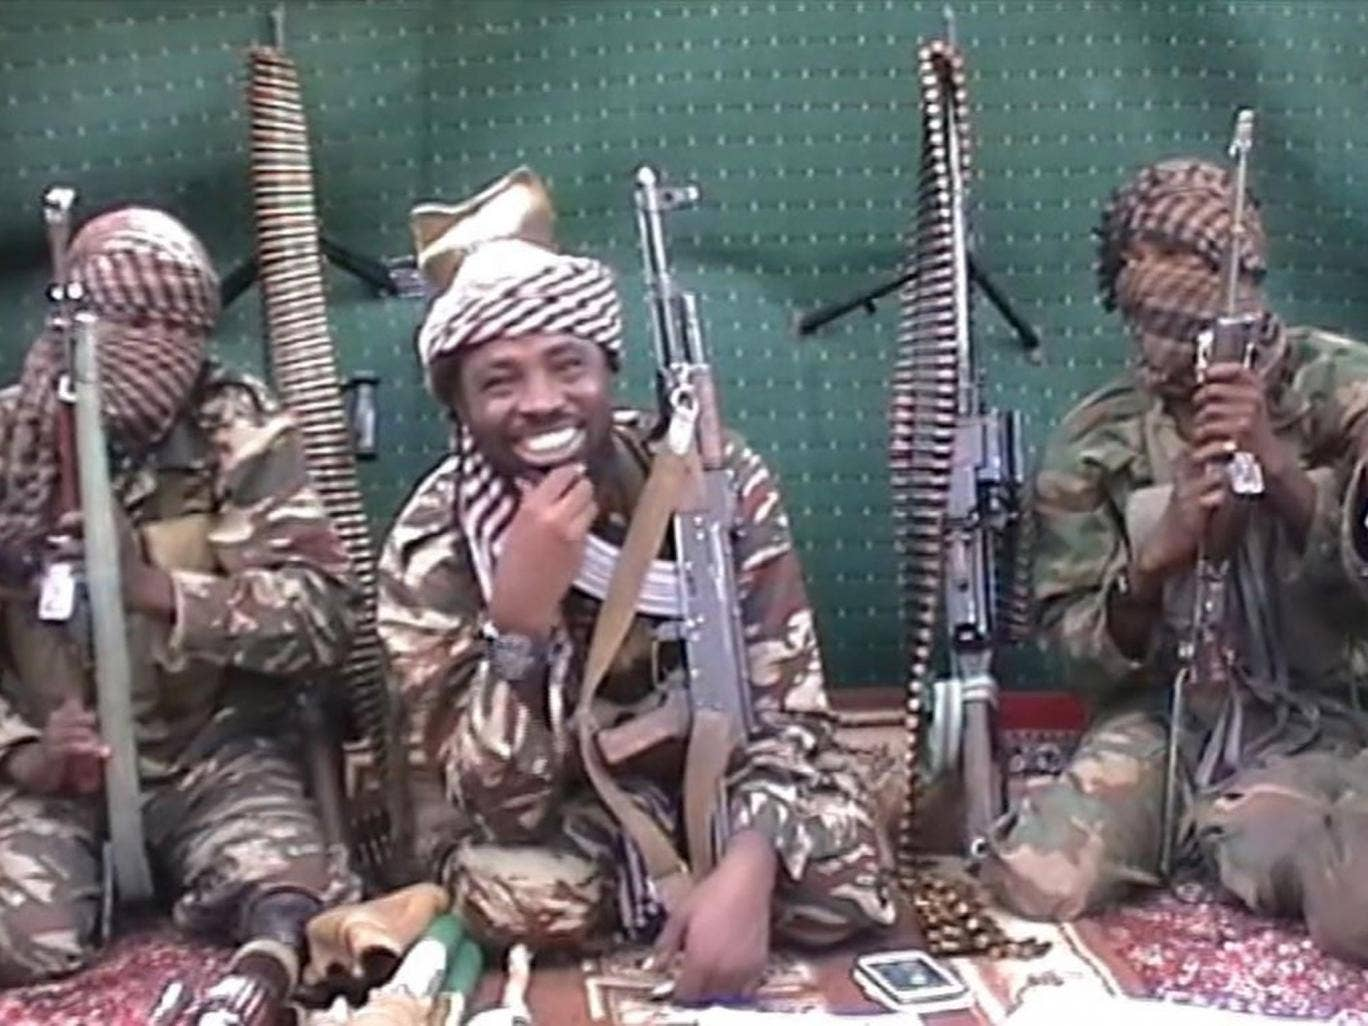 A video released by Boko Haram last year shows a man purporting to be Abubakar Shekau, the group's leader, taunting world leaders